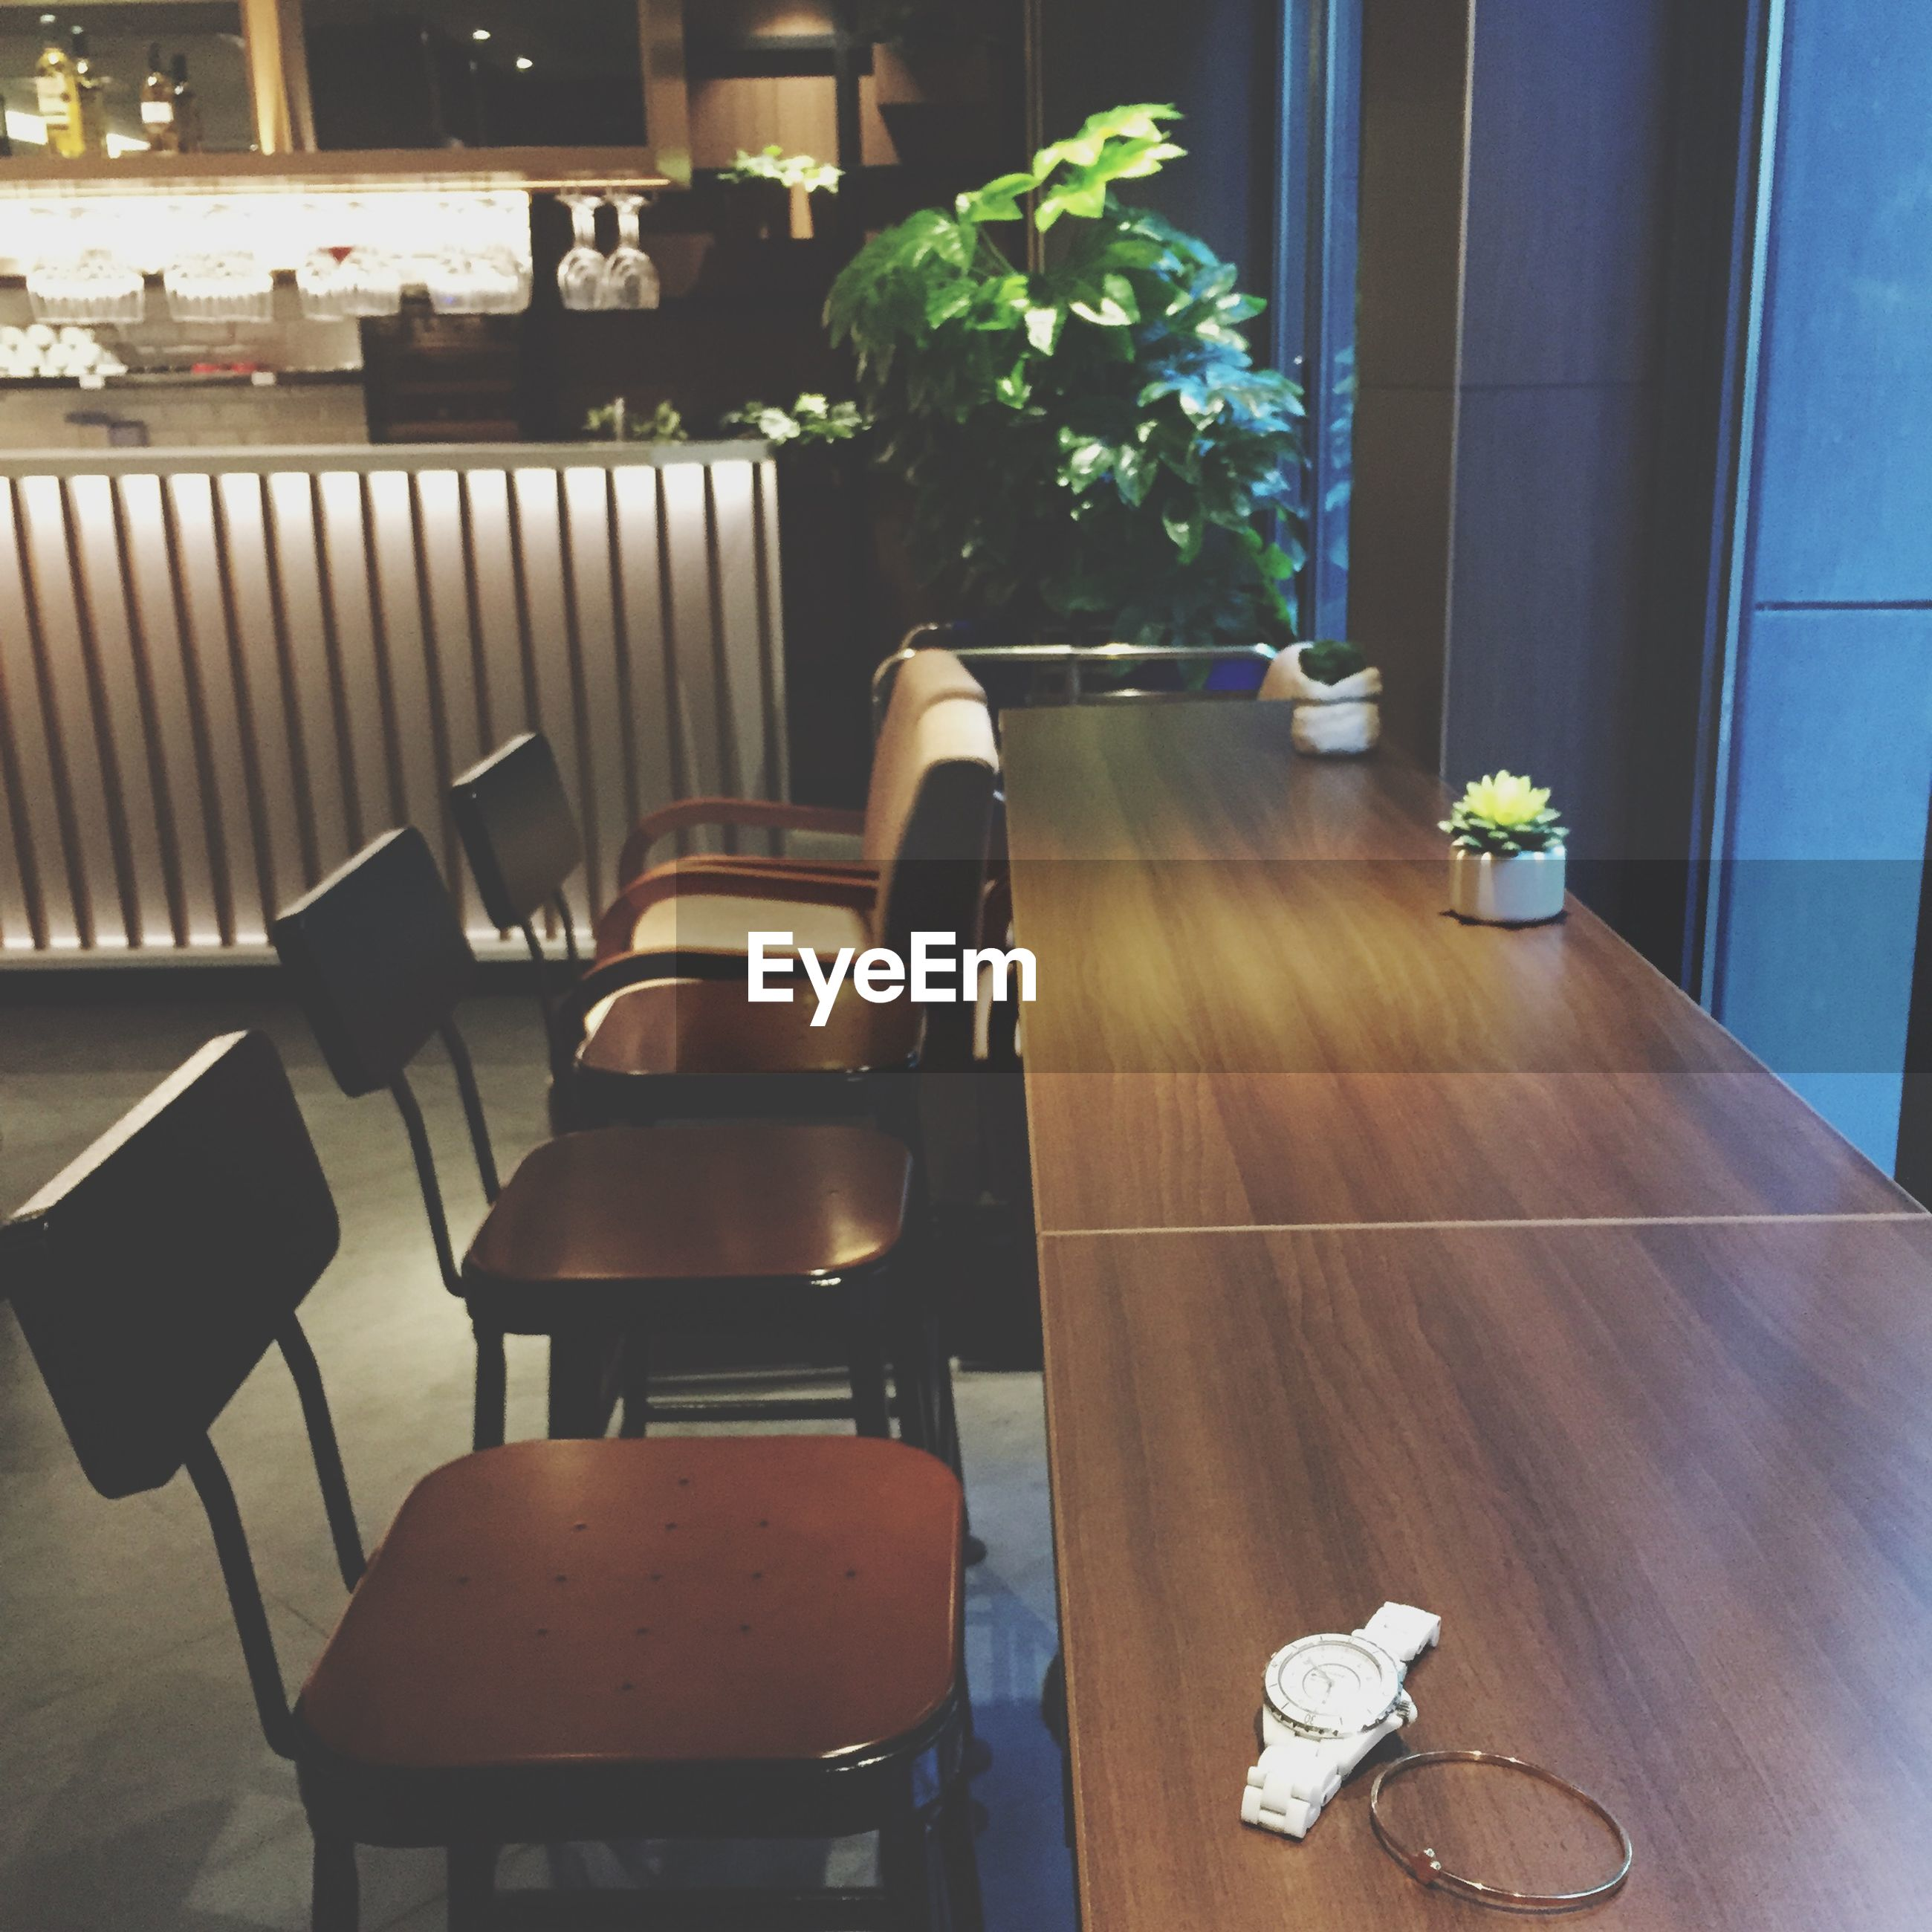 indoors, chair, table, absence, empty, furniture, home interior, sofa, seat, home showcase interior, living room, dining table, domestic room, vase, restaurant, relaxation, arrangement, place setting, no people, potted plant